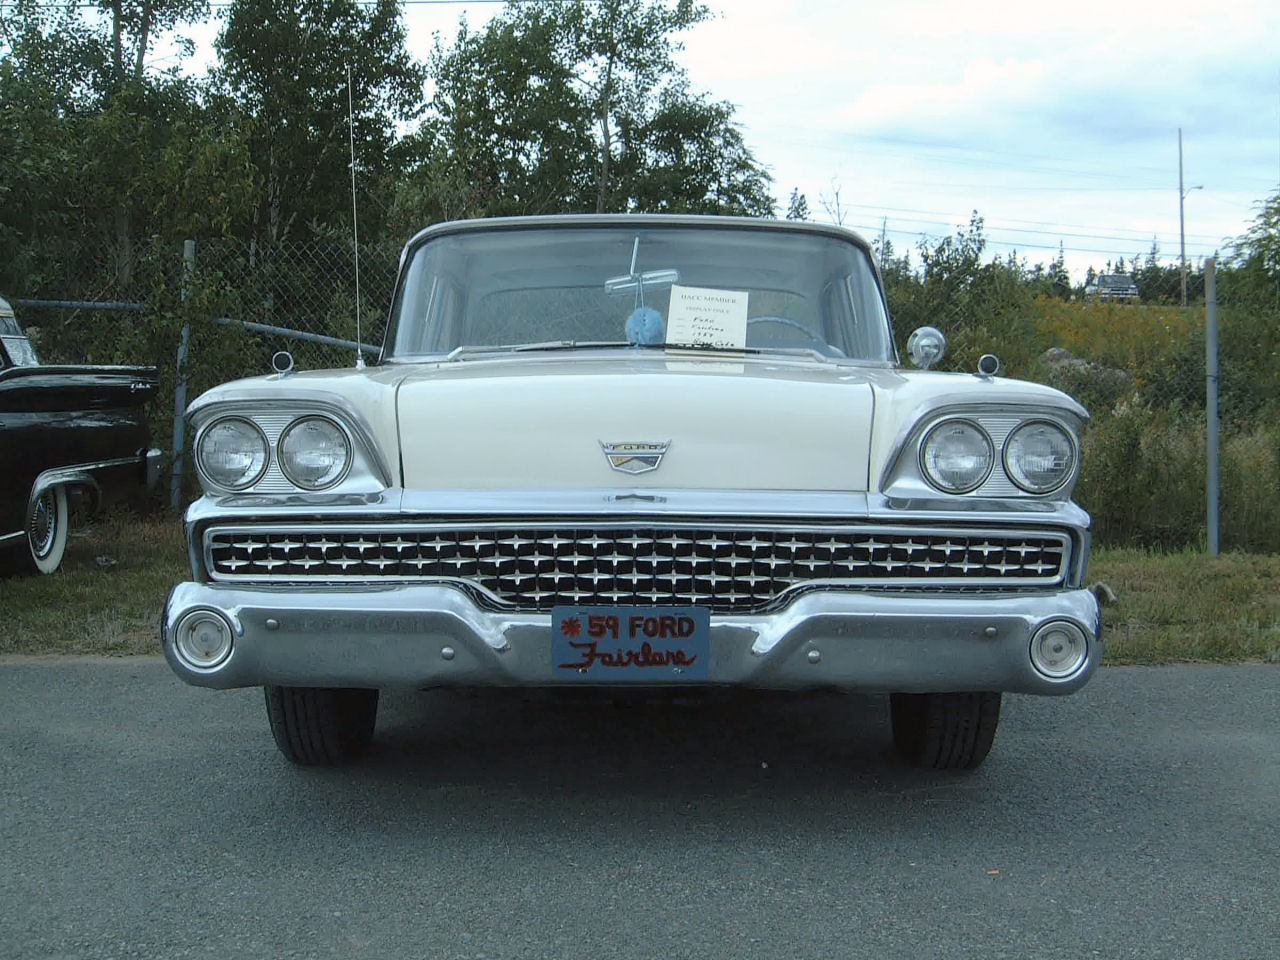 Ford fairlane 1959 photo - 8